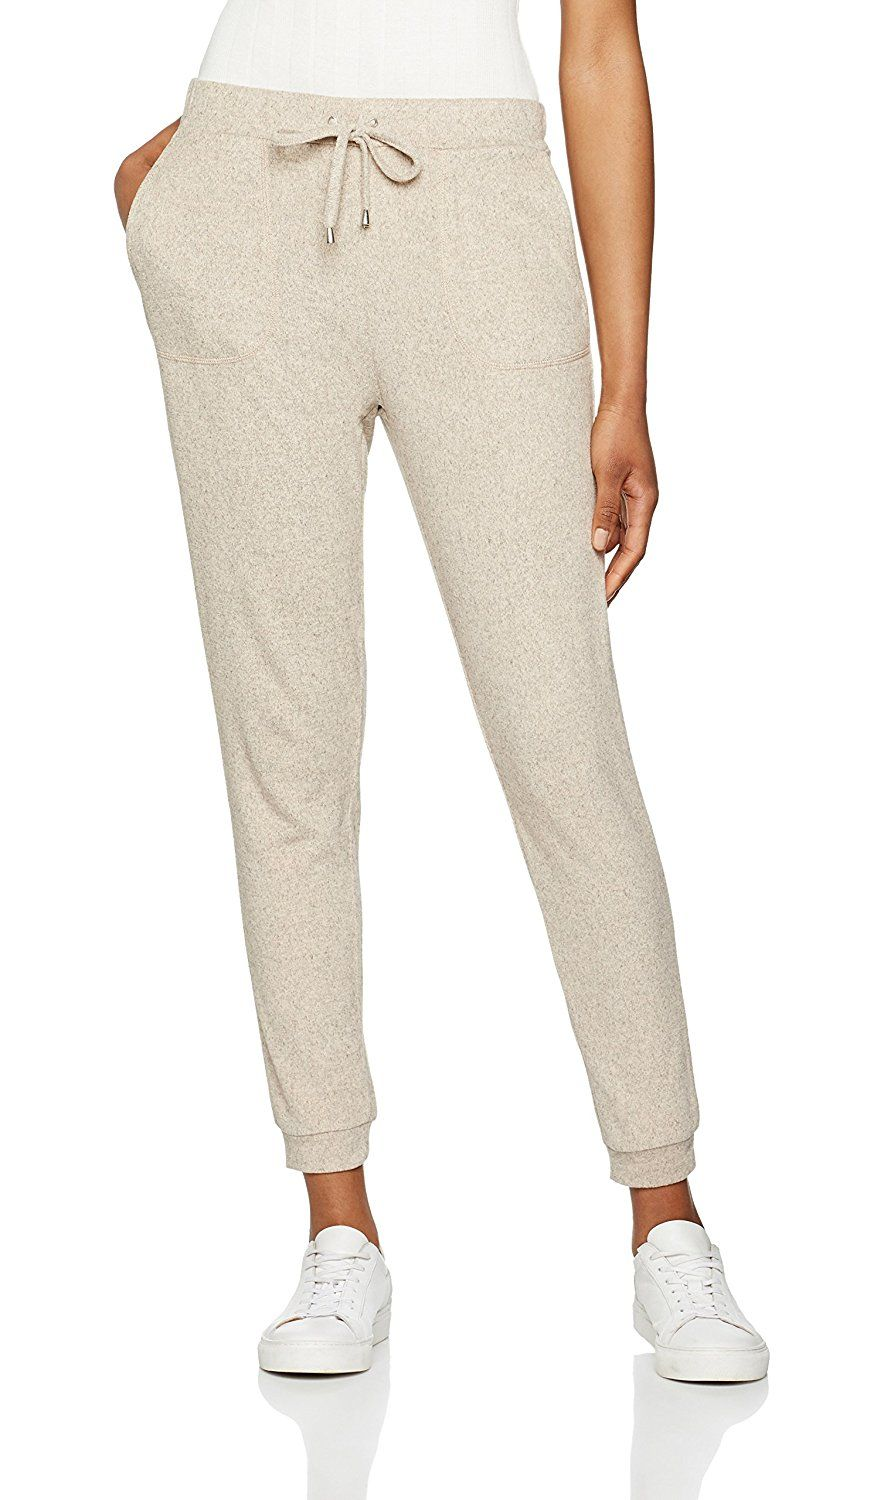 FIND Women's Super-Soft Jersey Joggers: Amazon.co.uk: Clothing